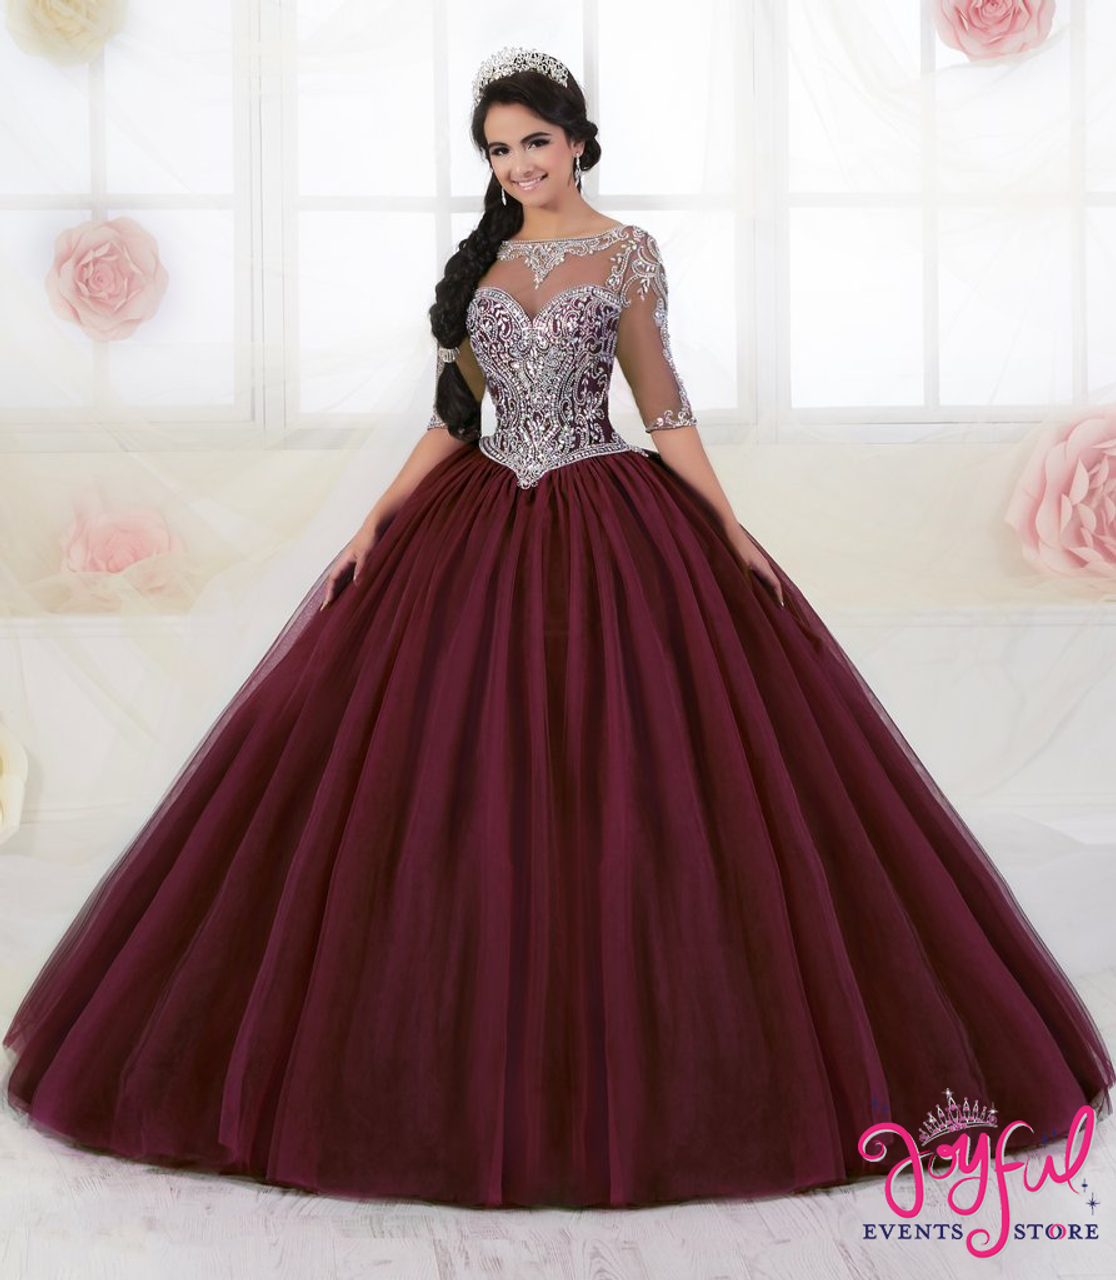 802c8bff4b6 House Of Wu Quinceanera Dresses Prices - Data Dynamic AG